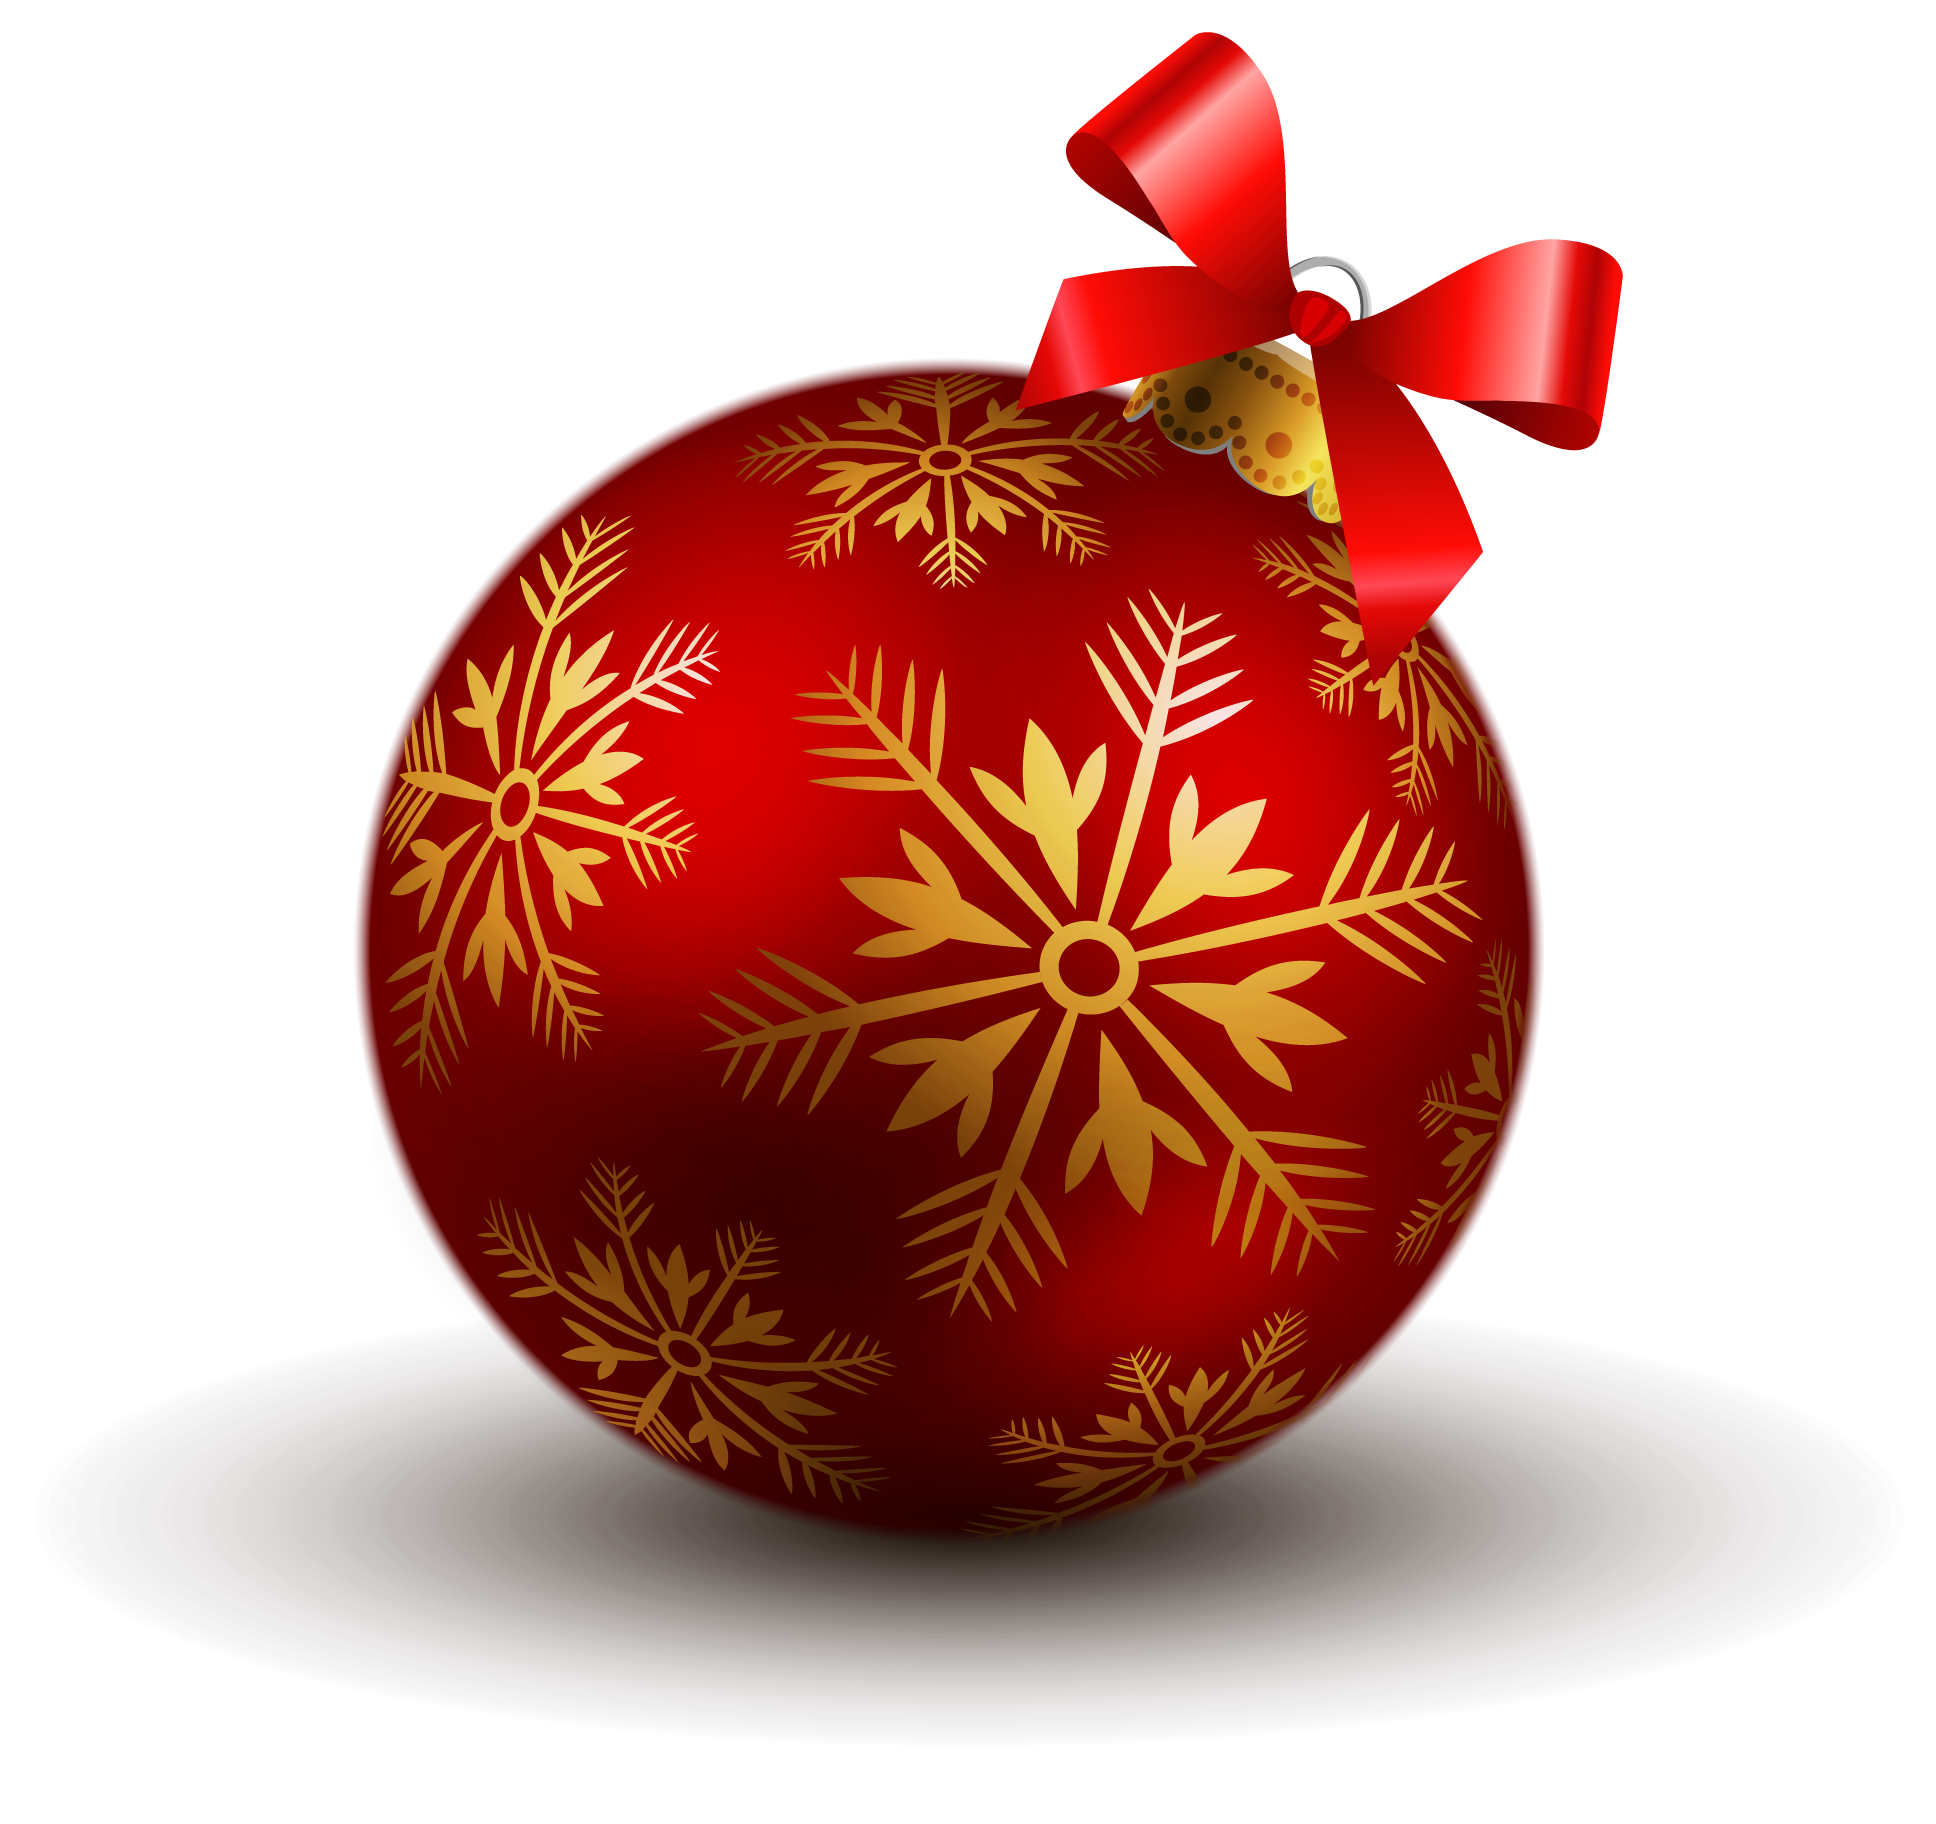 Memories clipart christmas. Free photo ball set